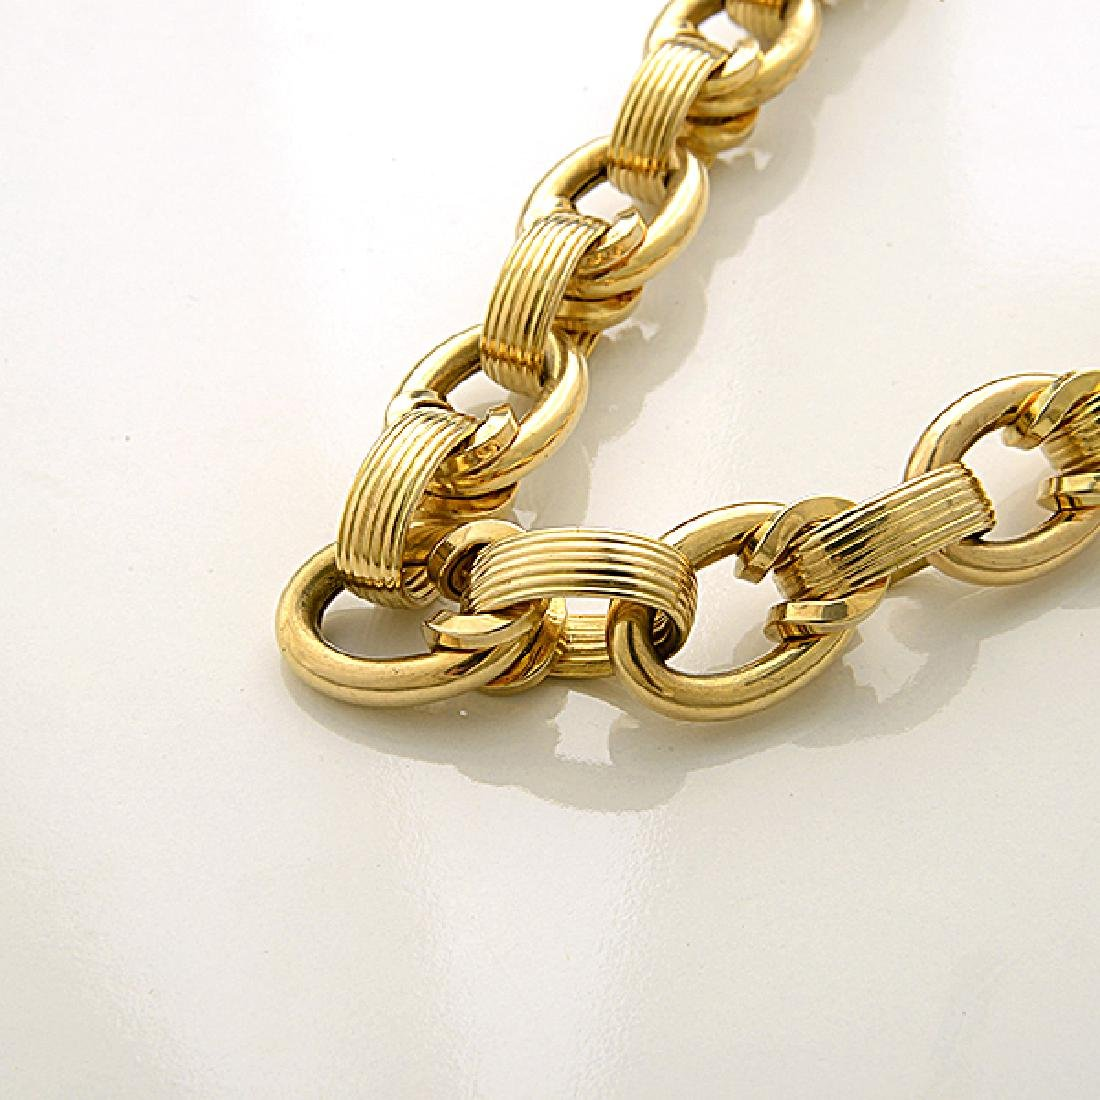 14k Yellow Gold Necklace. - 2